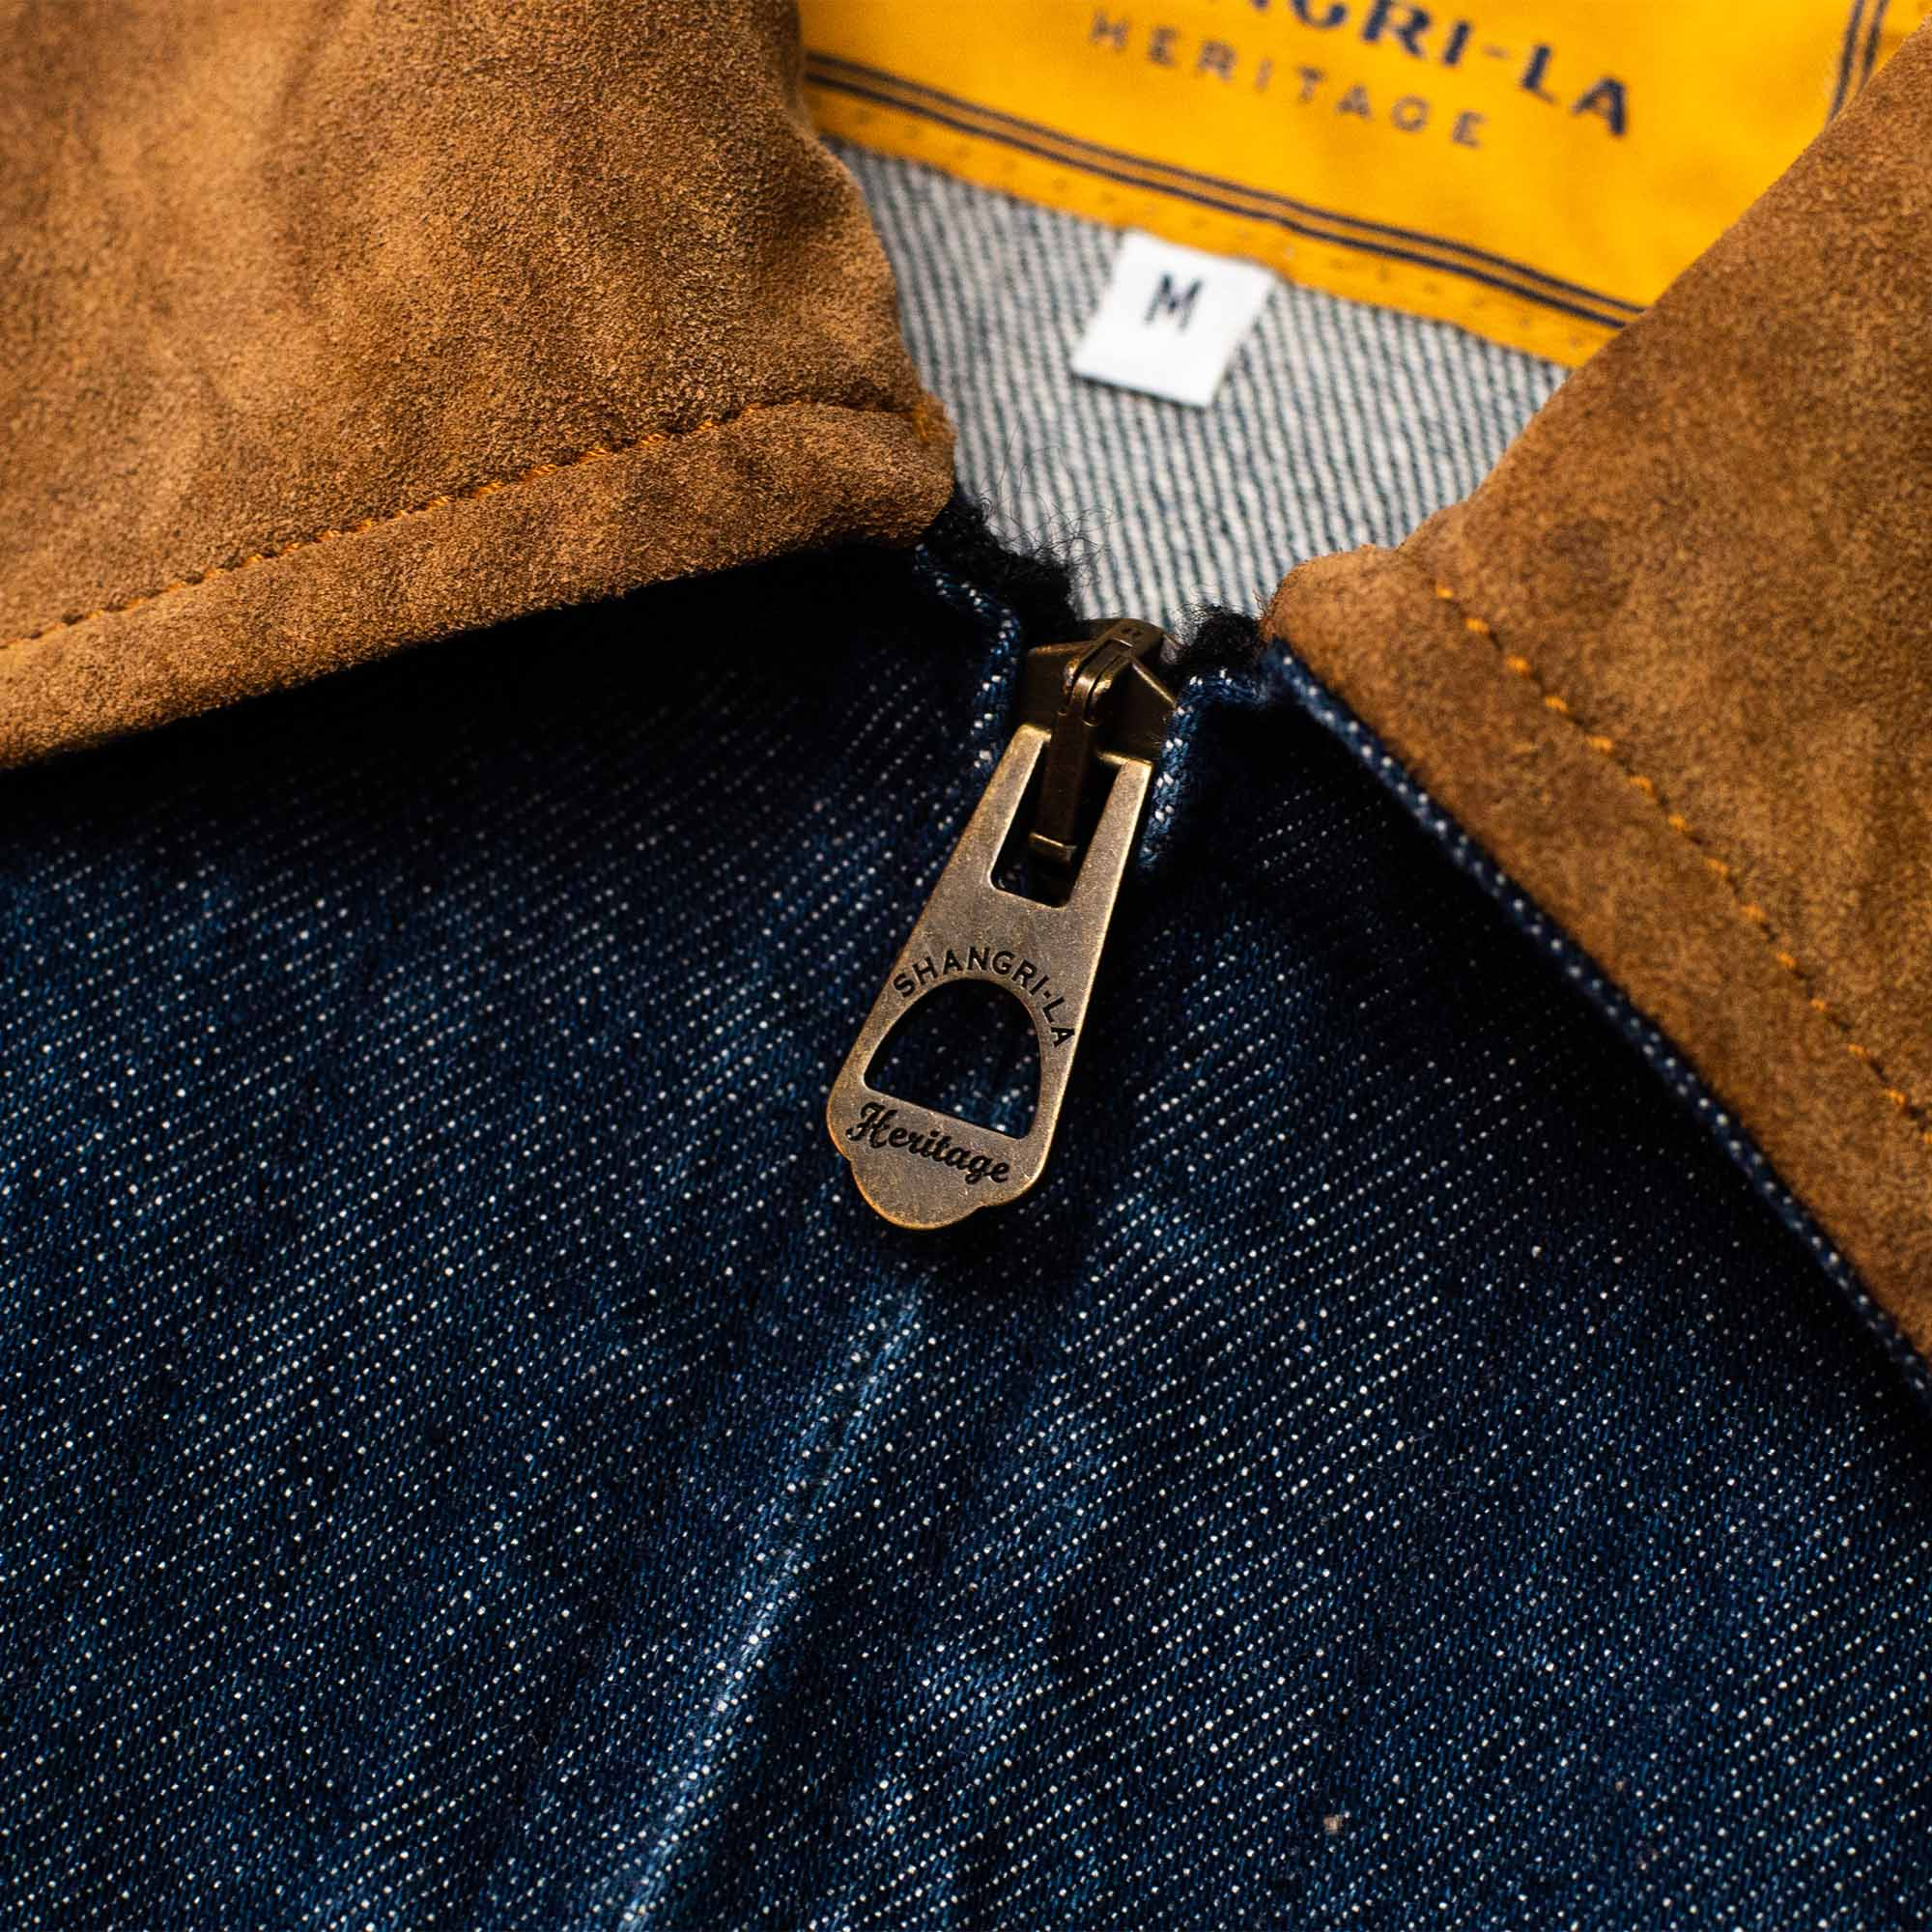 shangri-la-heritage-varenne-ranch-selvedge-candiani-denim-jacket-still-life-zipper